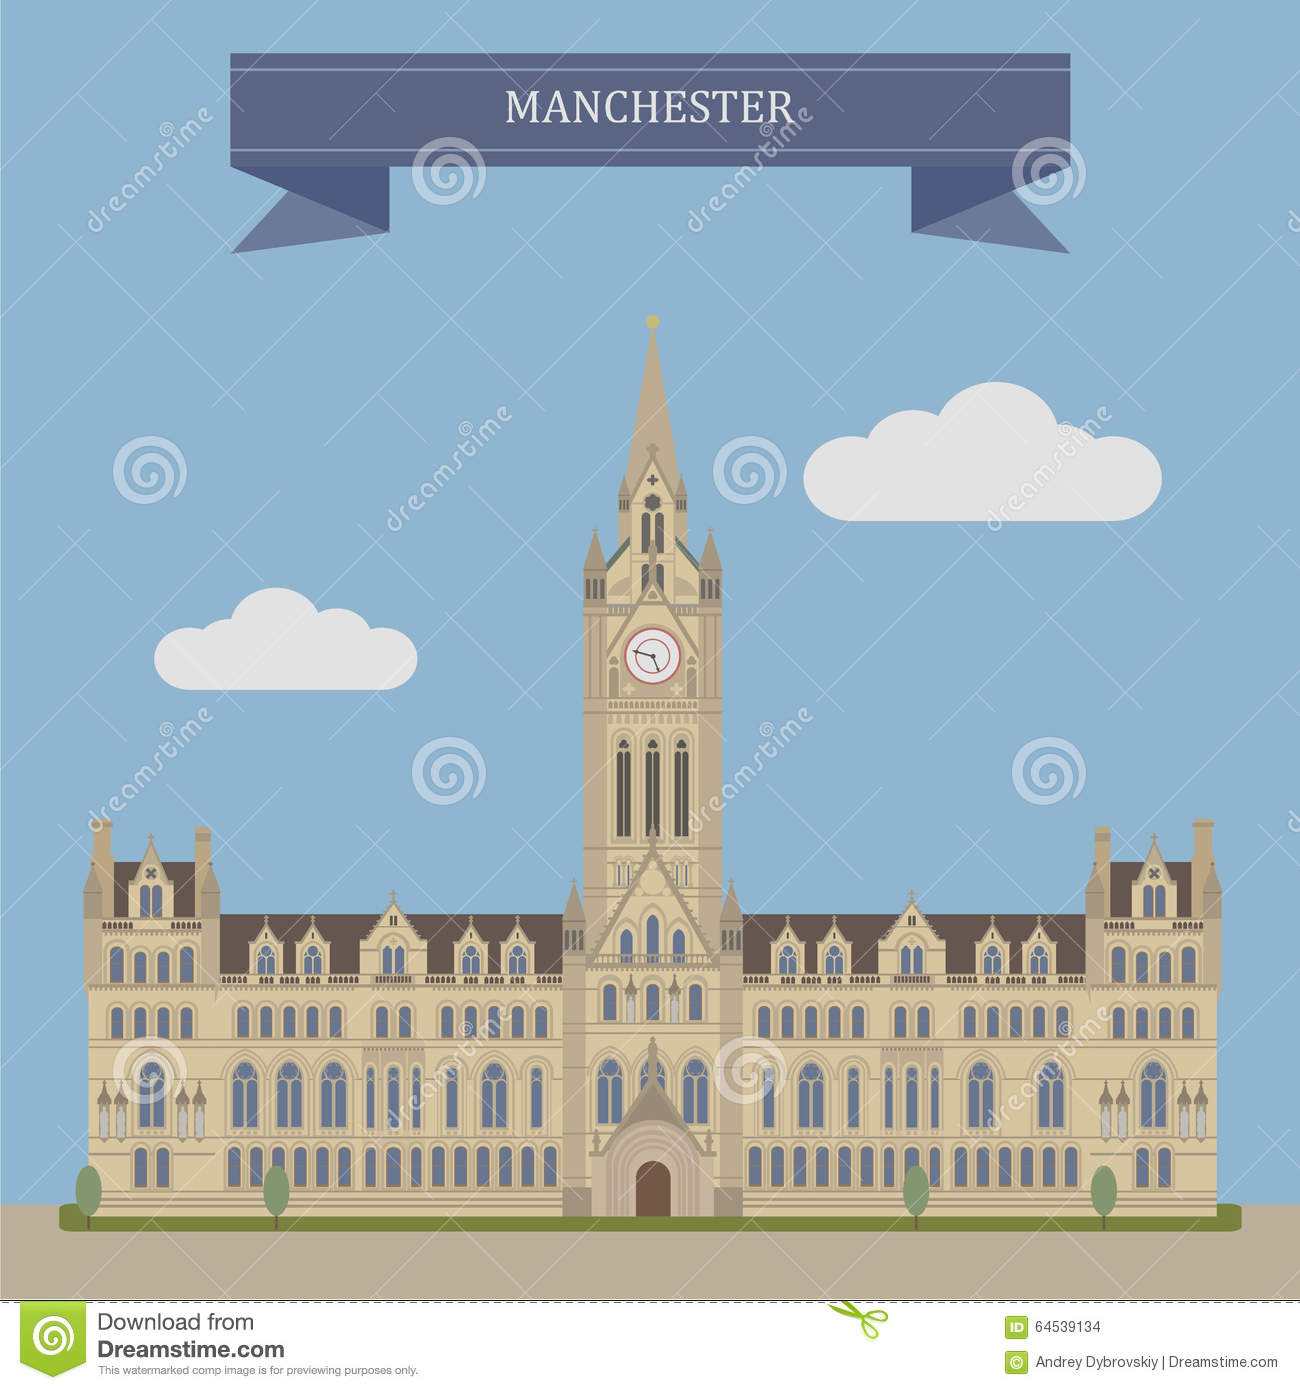 Manchester, Angleterre